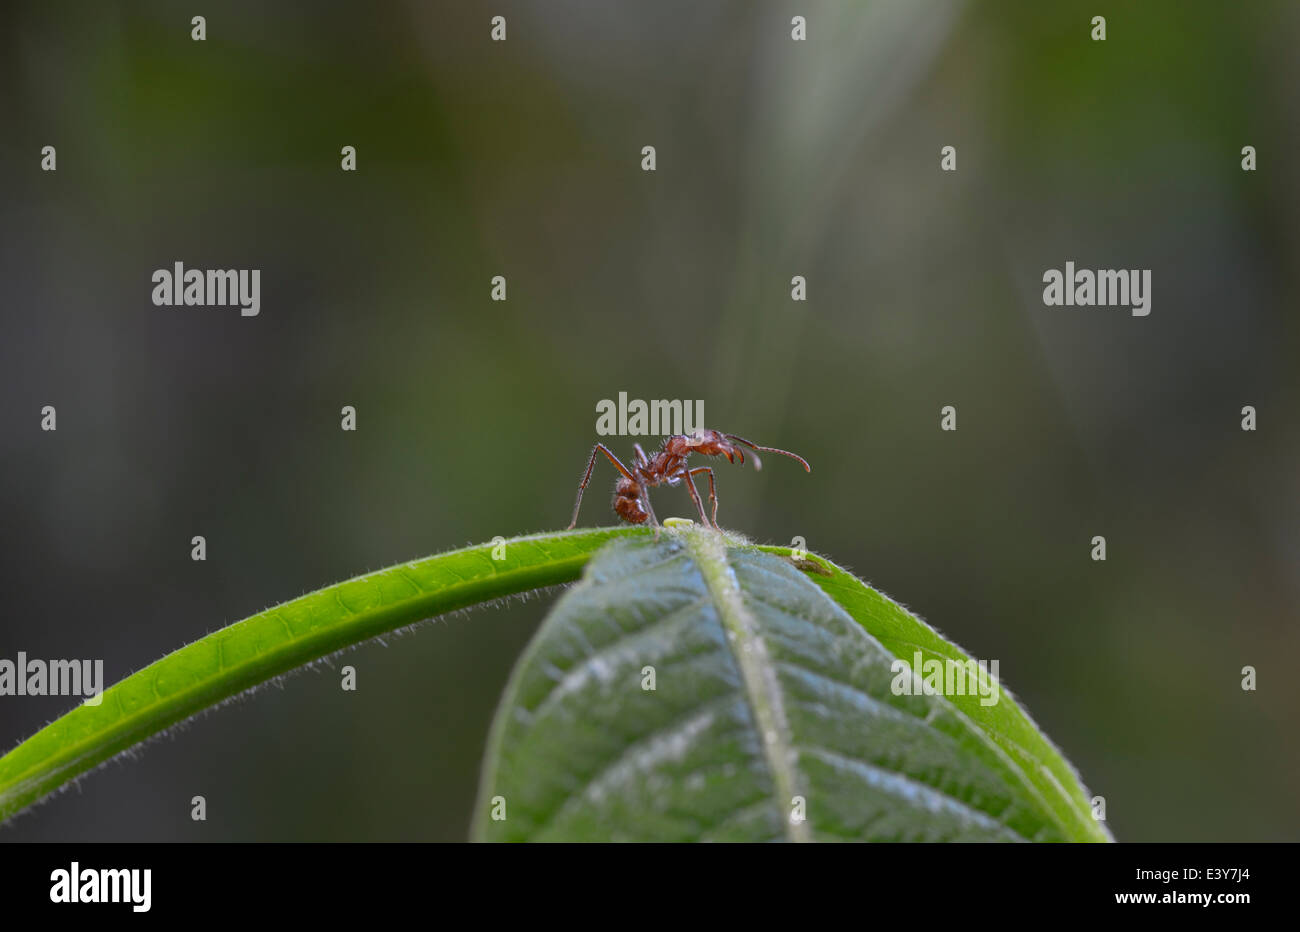 Symbiosis between ant, Azteca sp., and Inga plant that provides nectar in bowls visible at base of leaves - see - Stock Image